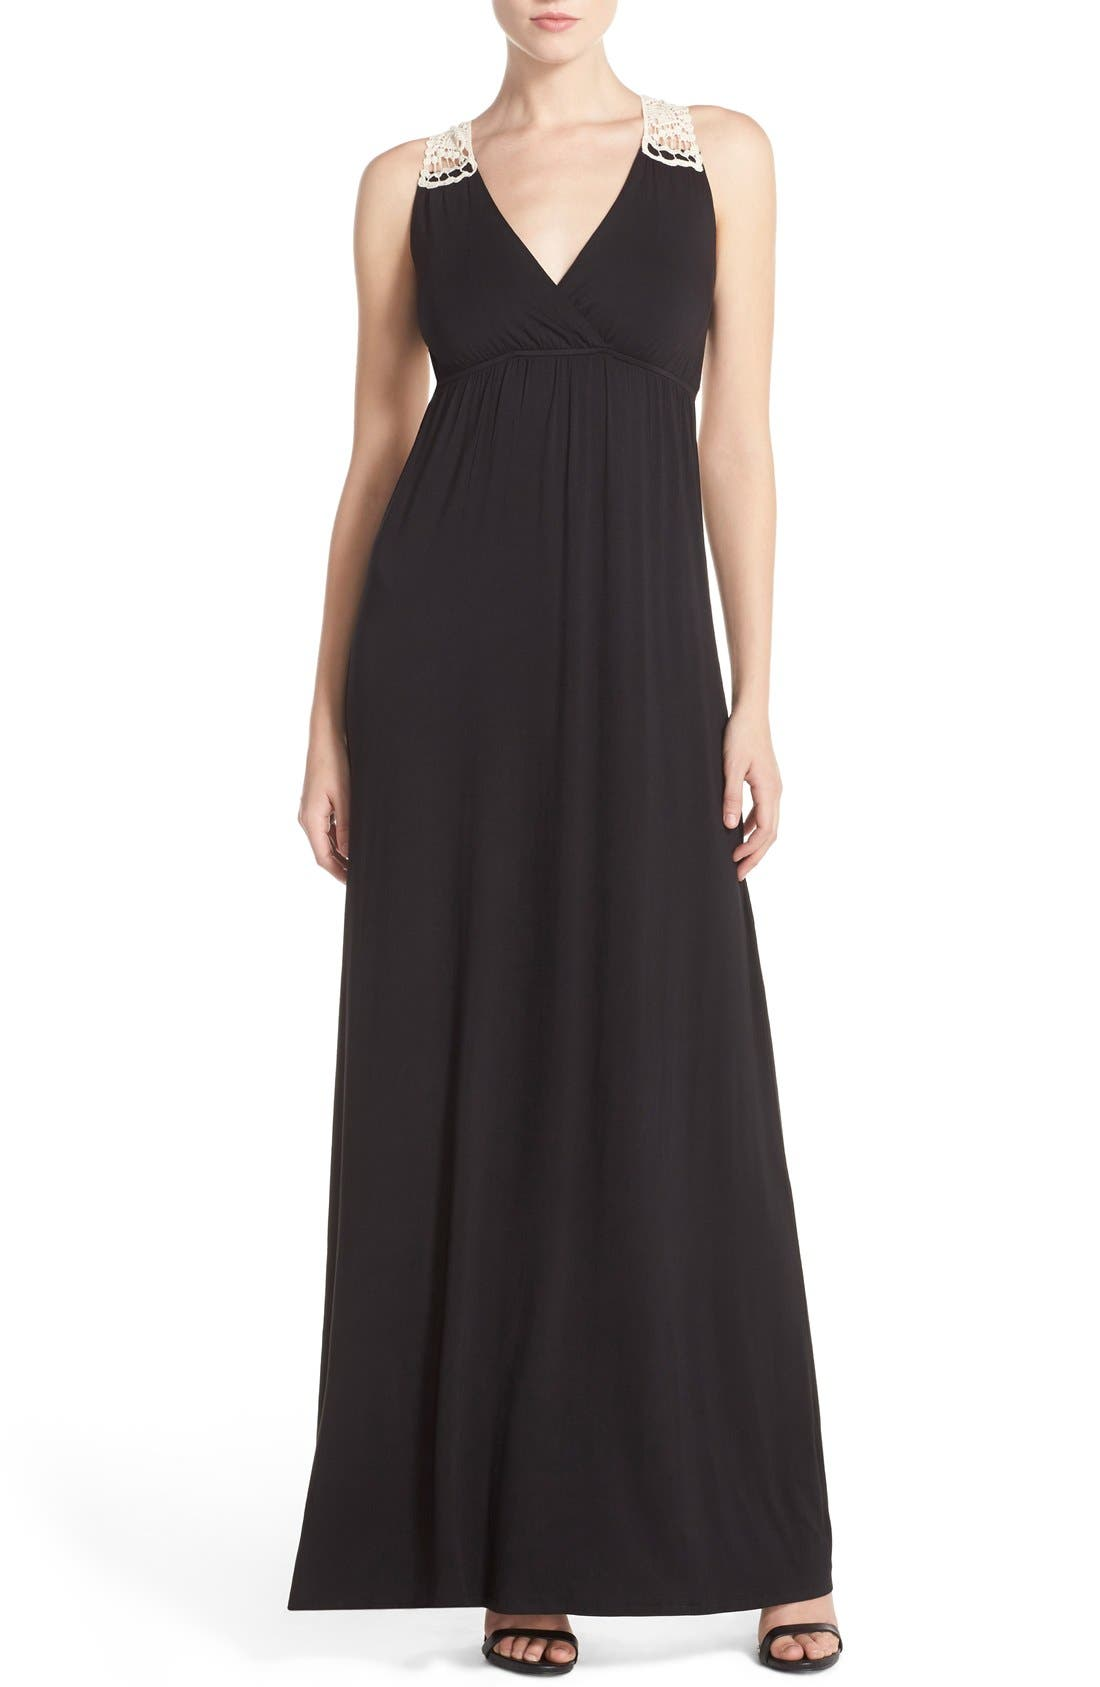 Alternate Image 1 Selected - Felicity & Coco Crochet Back Jersey Maxi Dress (Regular & Petite) (Nordstrom Exclusive)